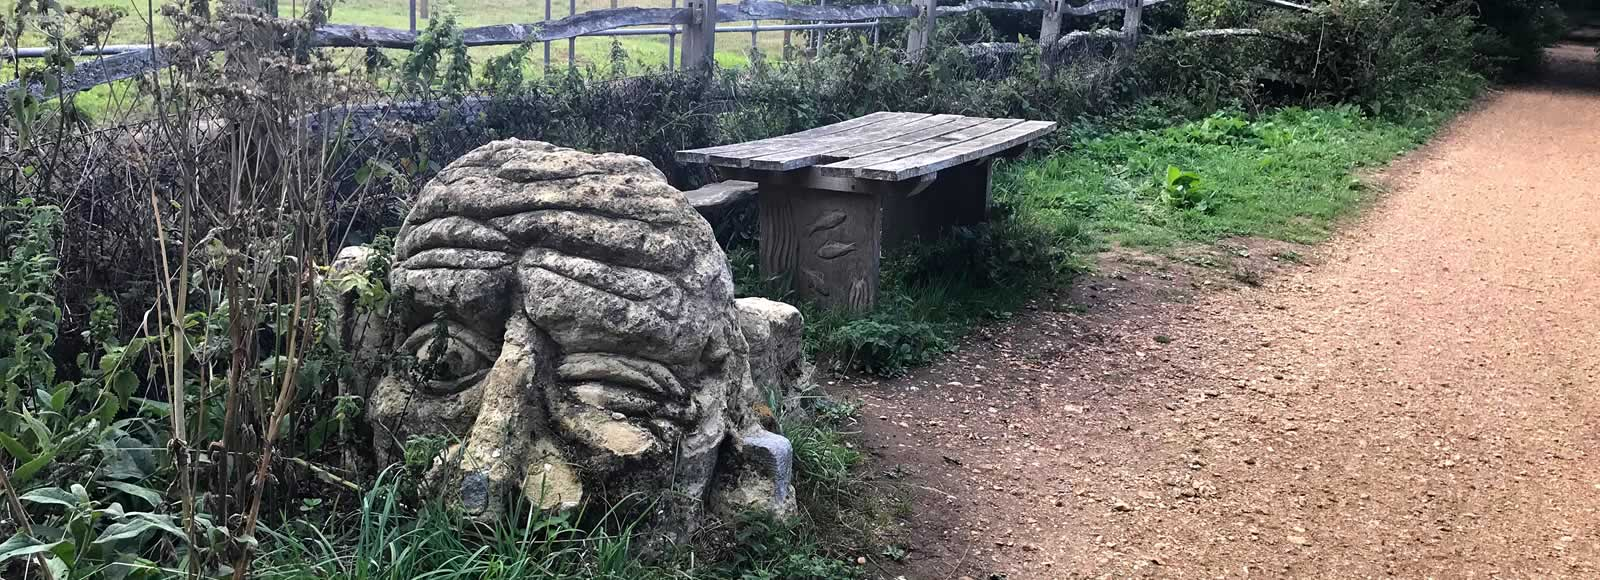 Troll bench, cycle track near Blackwater